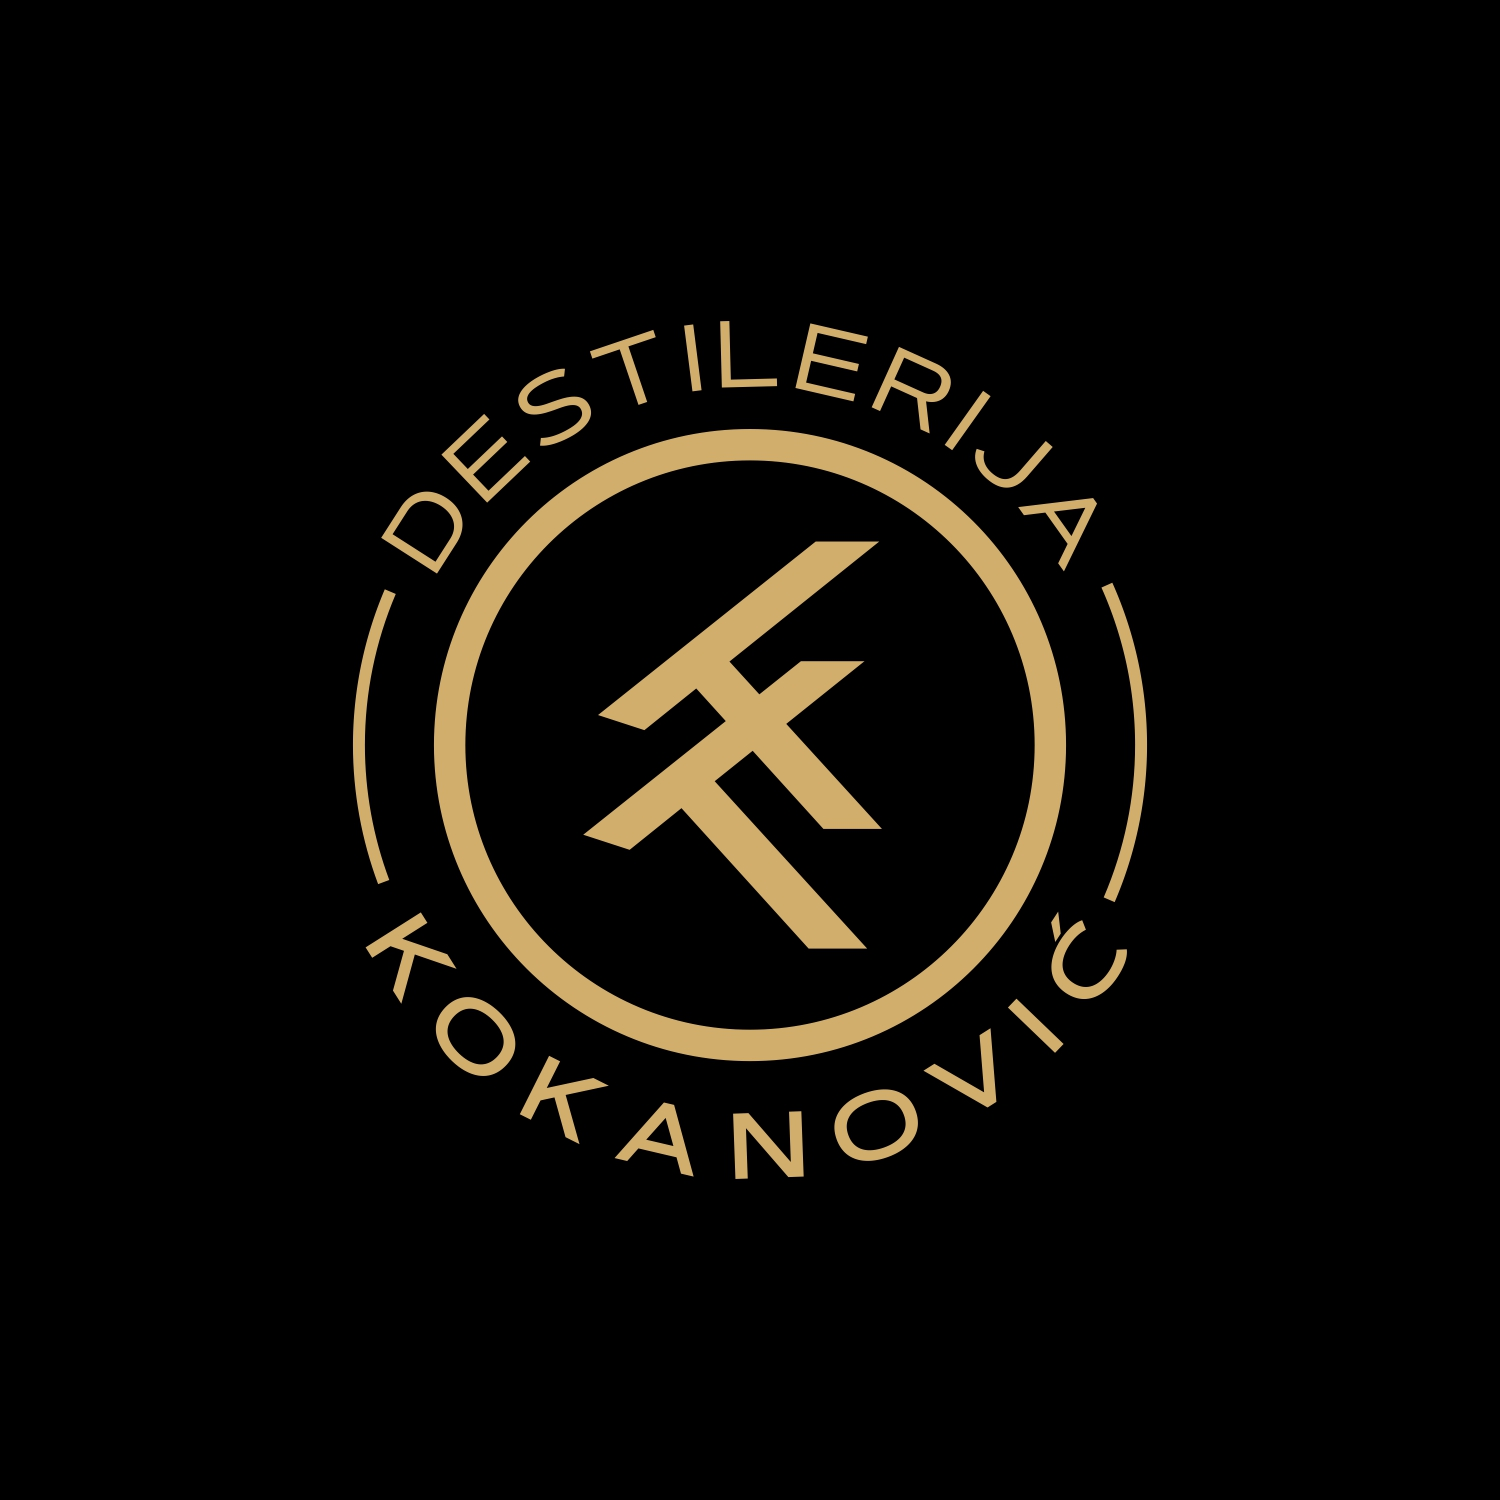 Distillery Kokanovic